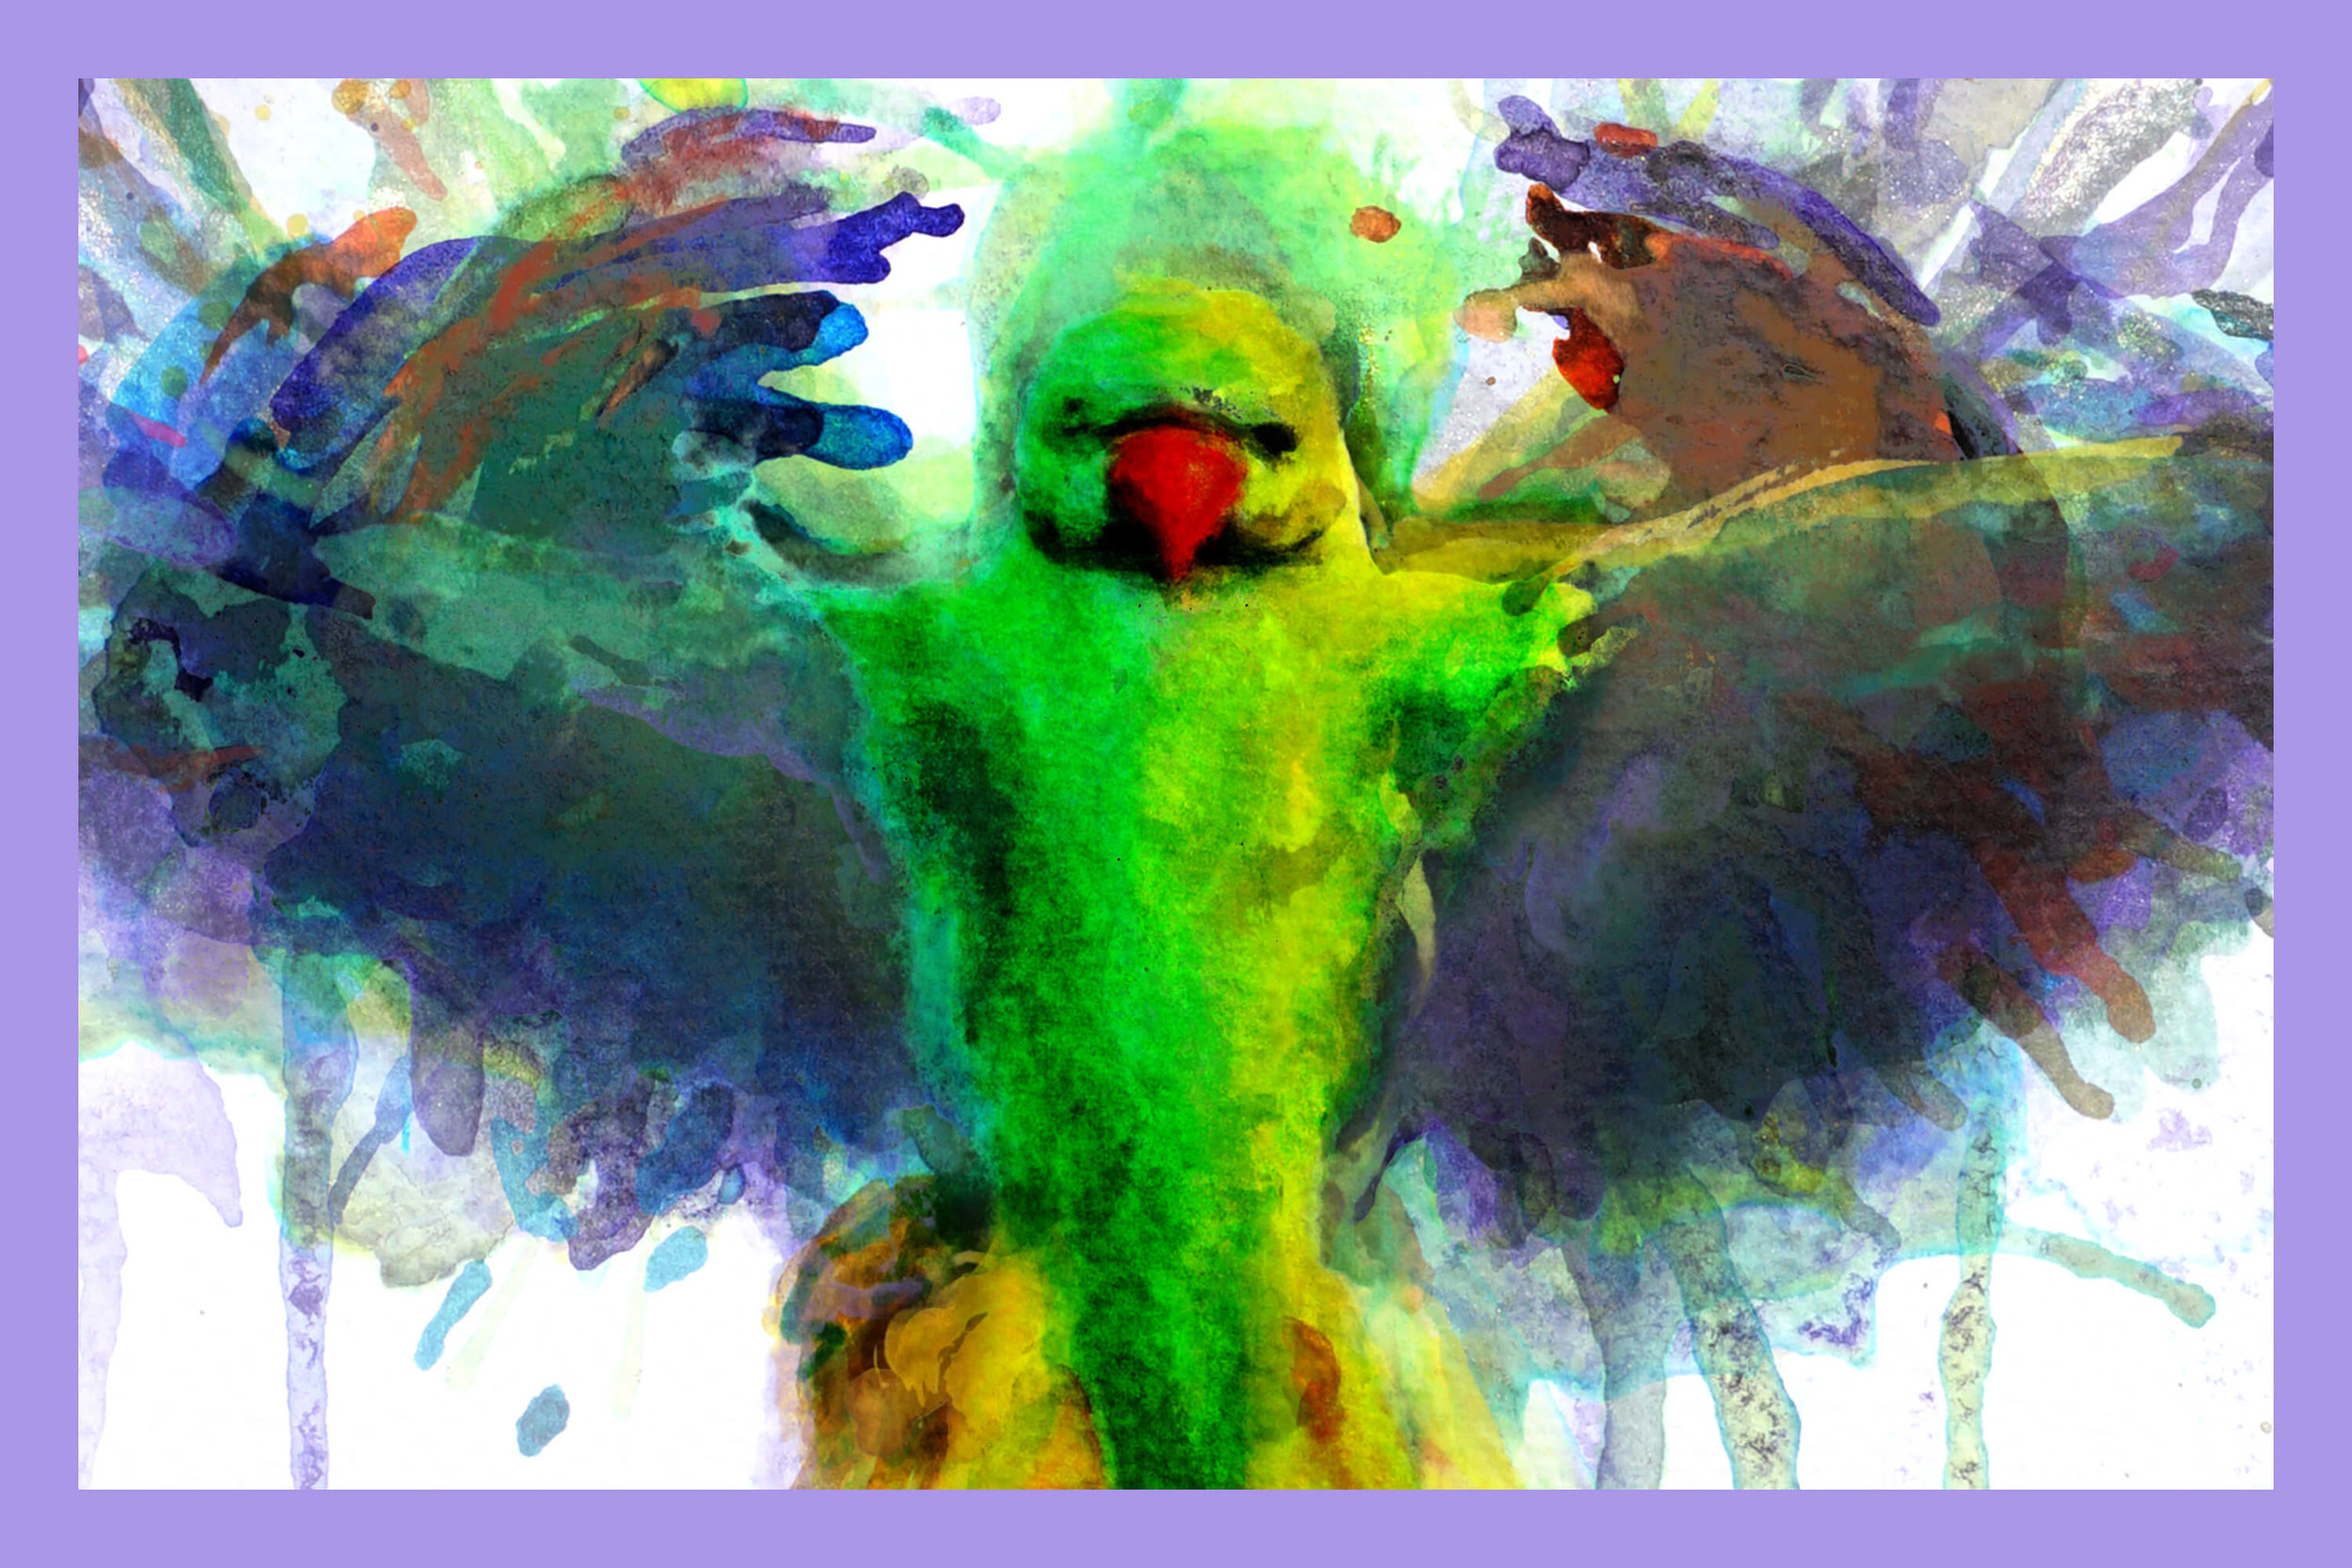 Dynamic Parakeets - Limited collector's edition prints